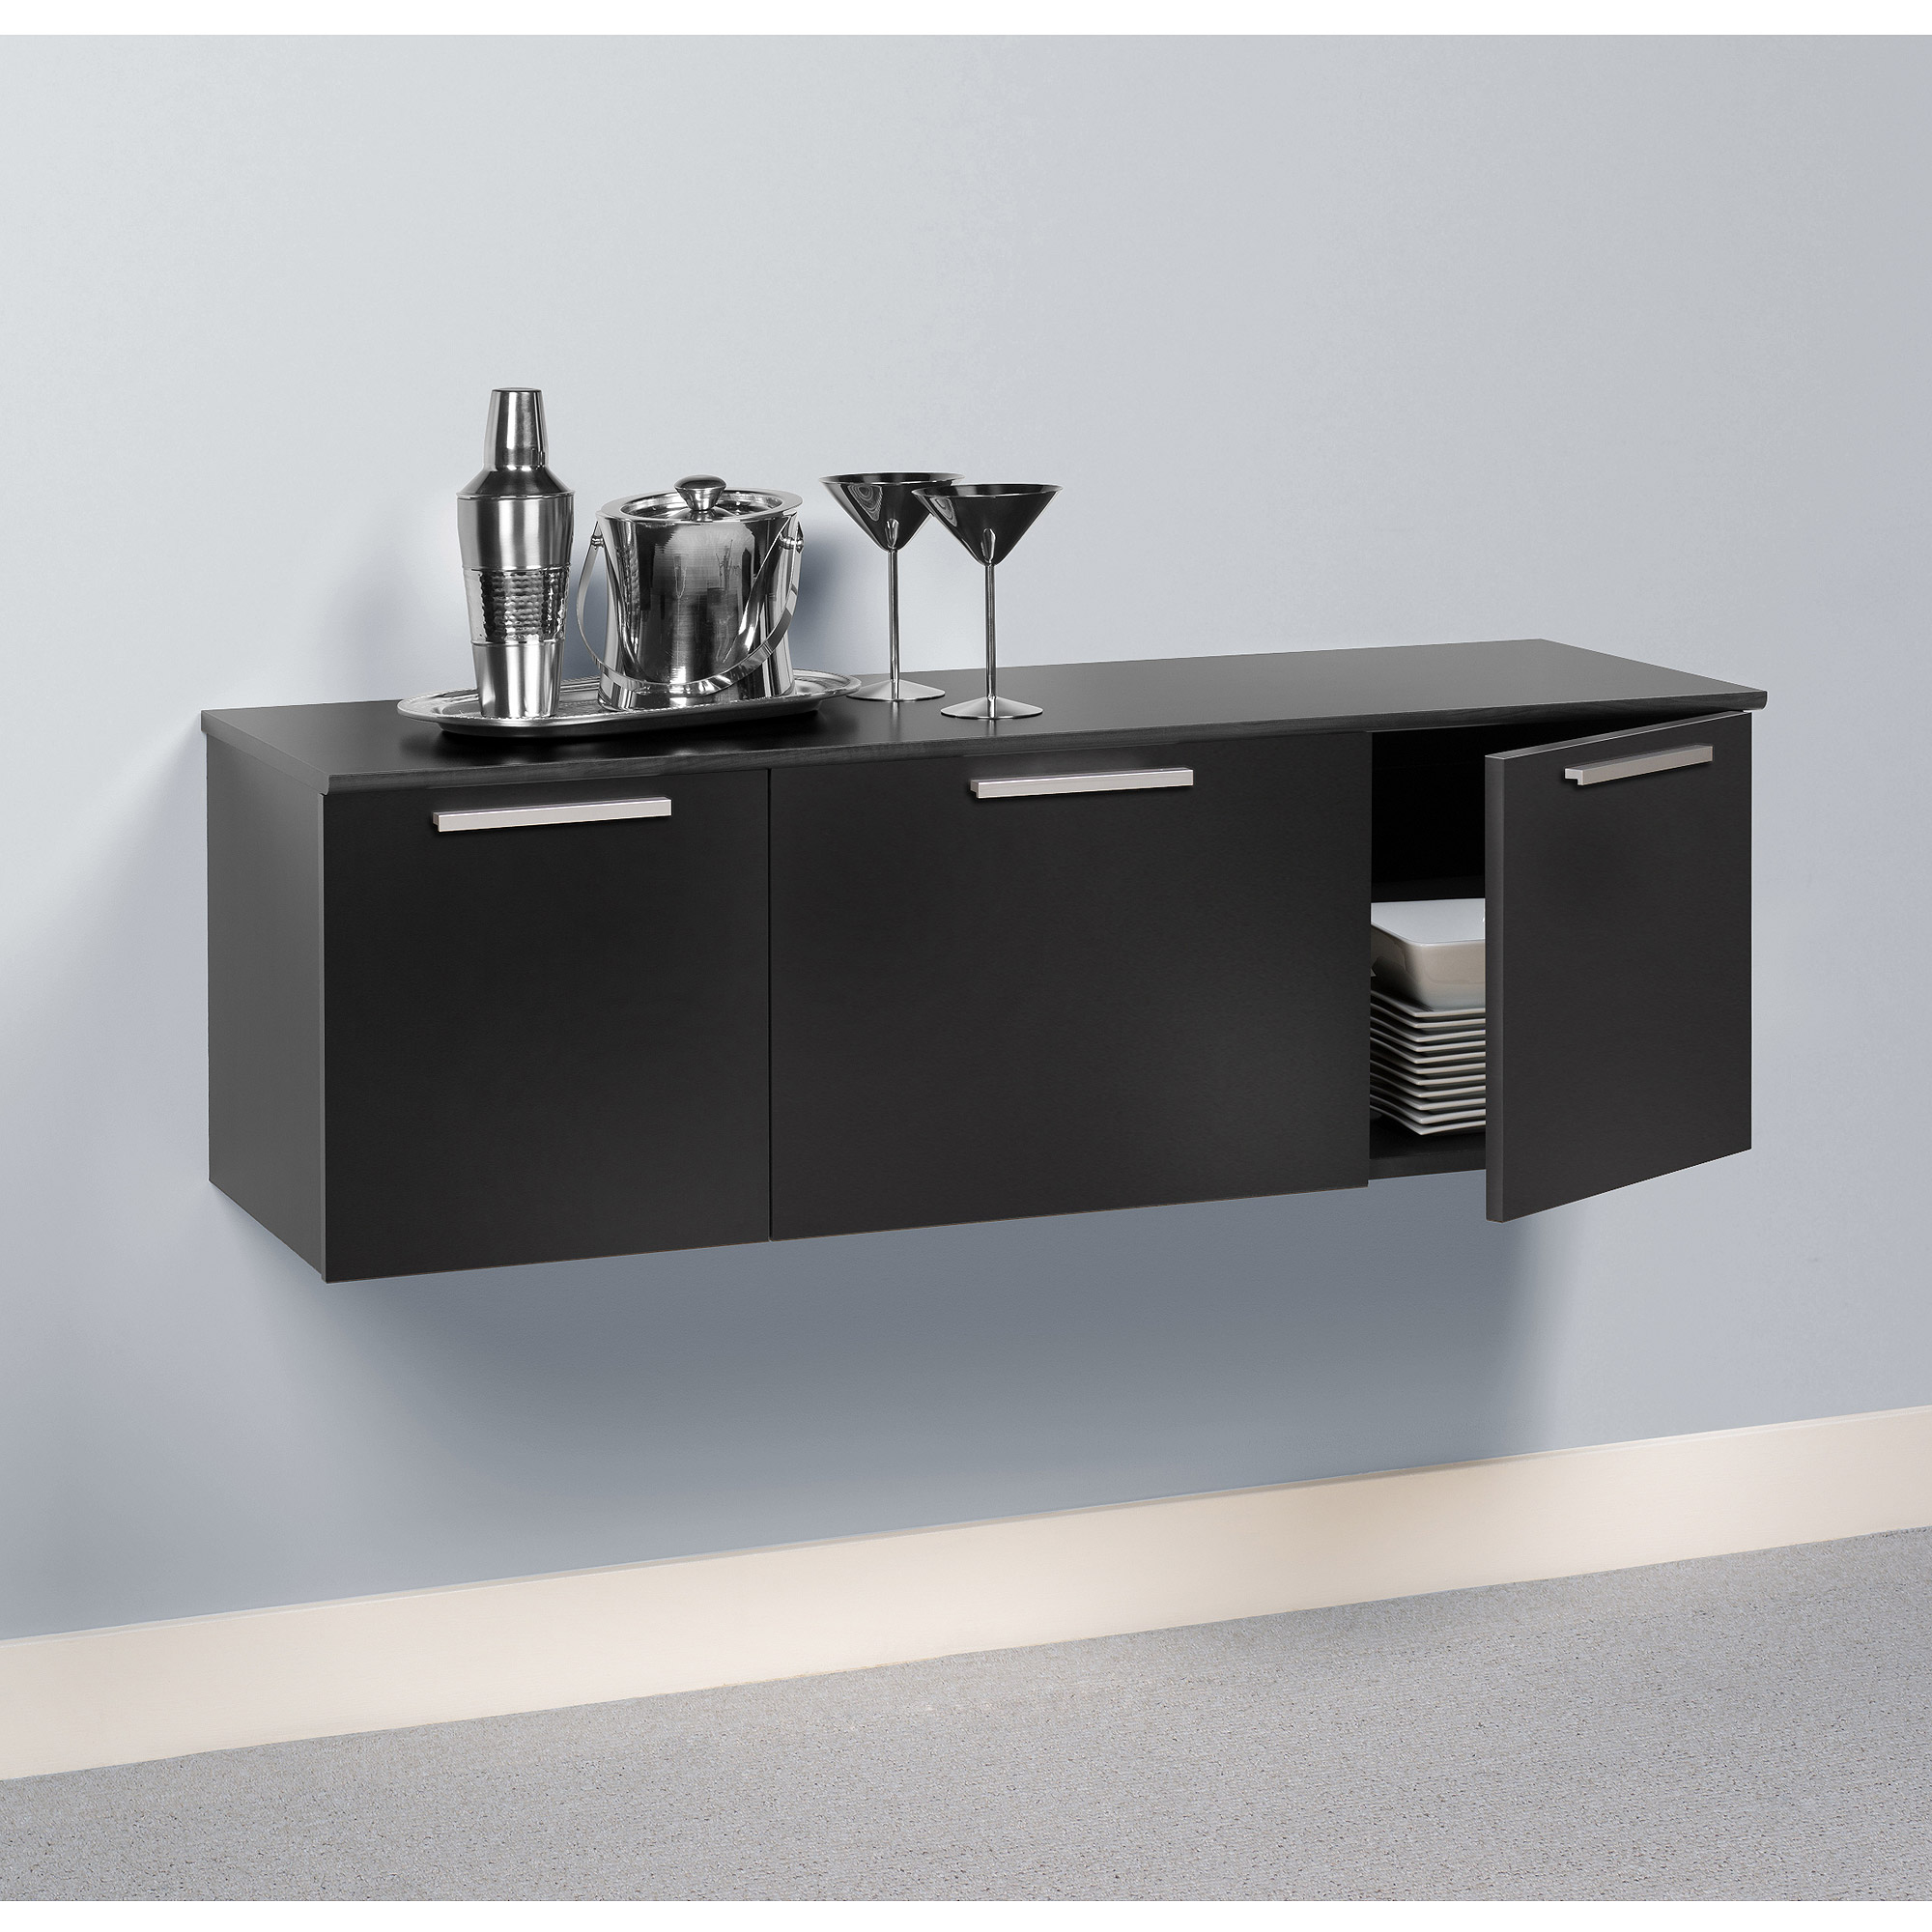 imagio home roanoke server sideboard cabinet rubbed black